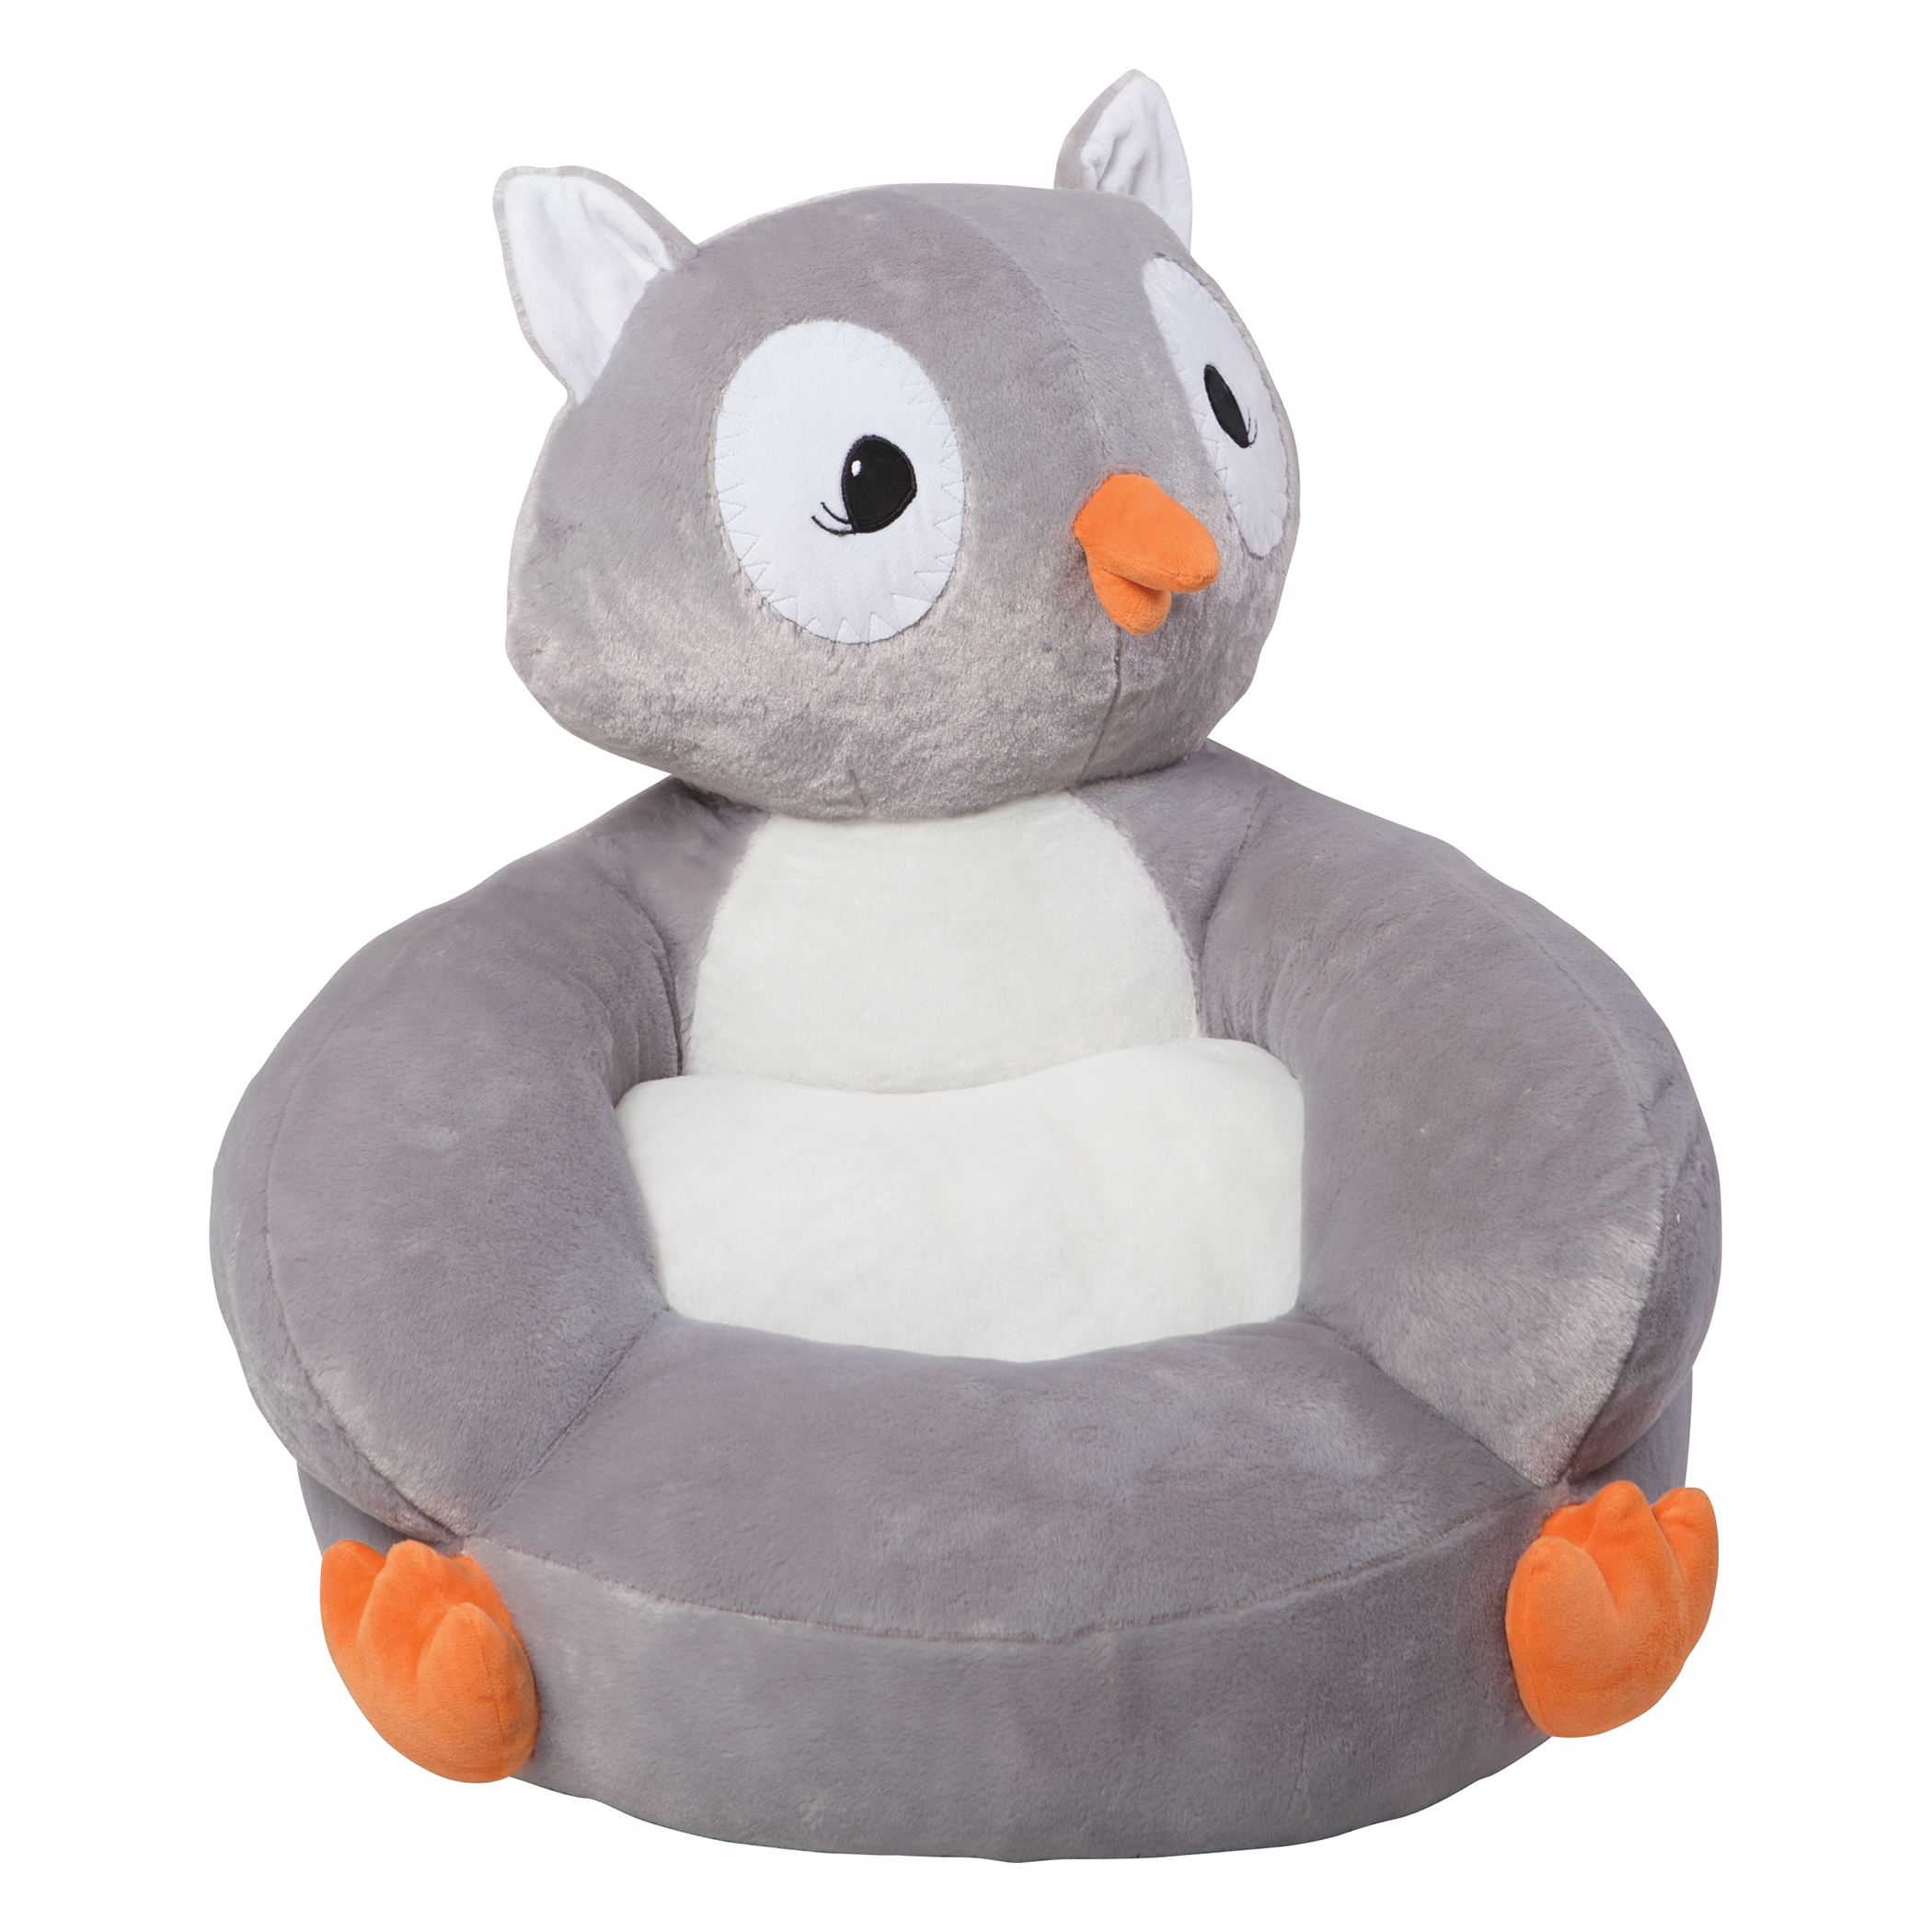 Plush Toddler Chair Trend Lab 102652 Children 39s Plush Owl Character Chair